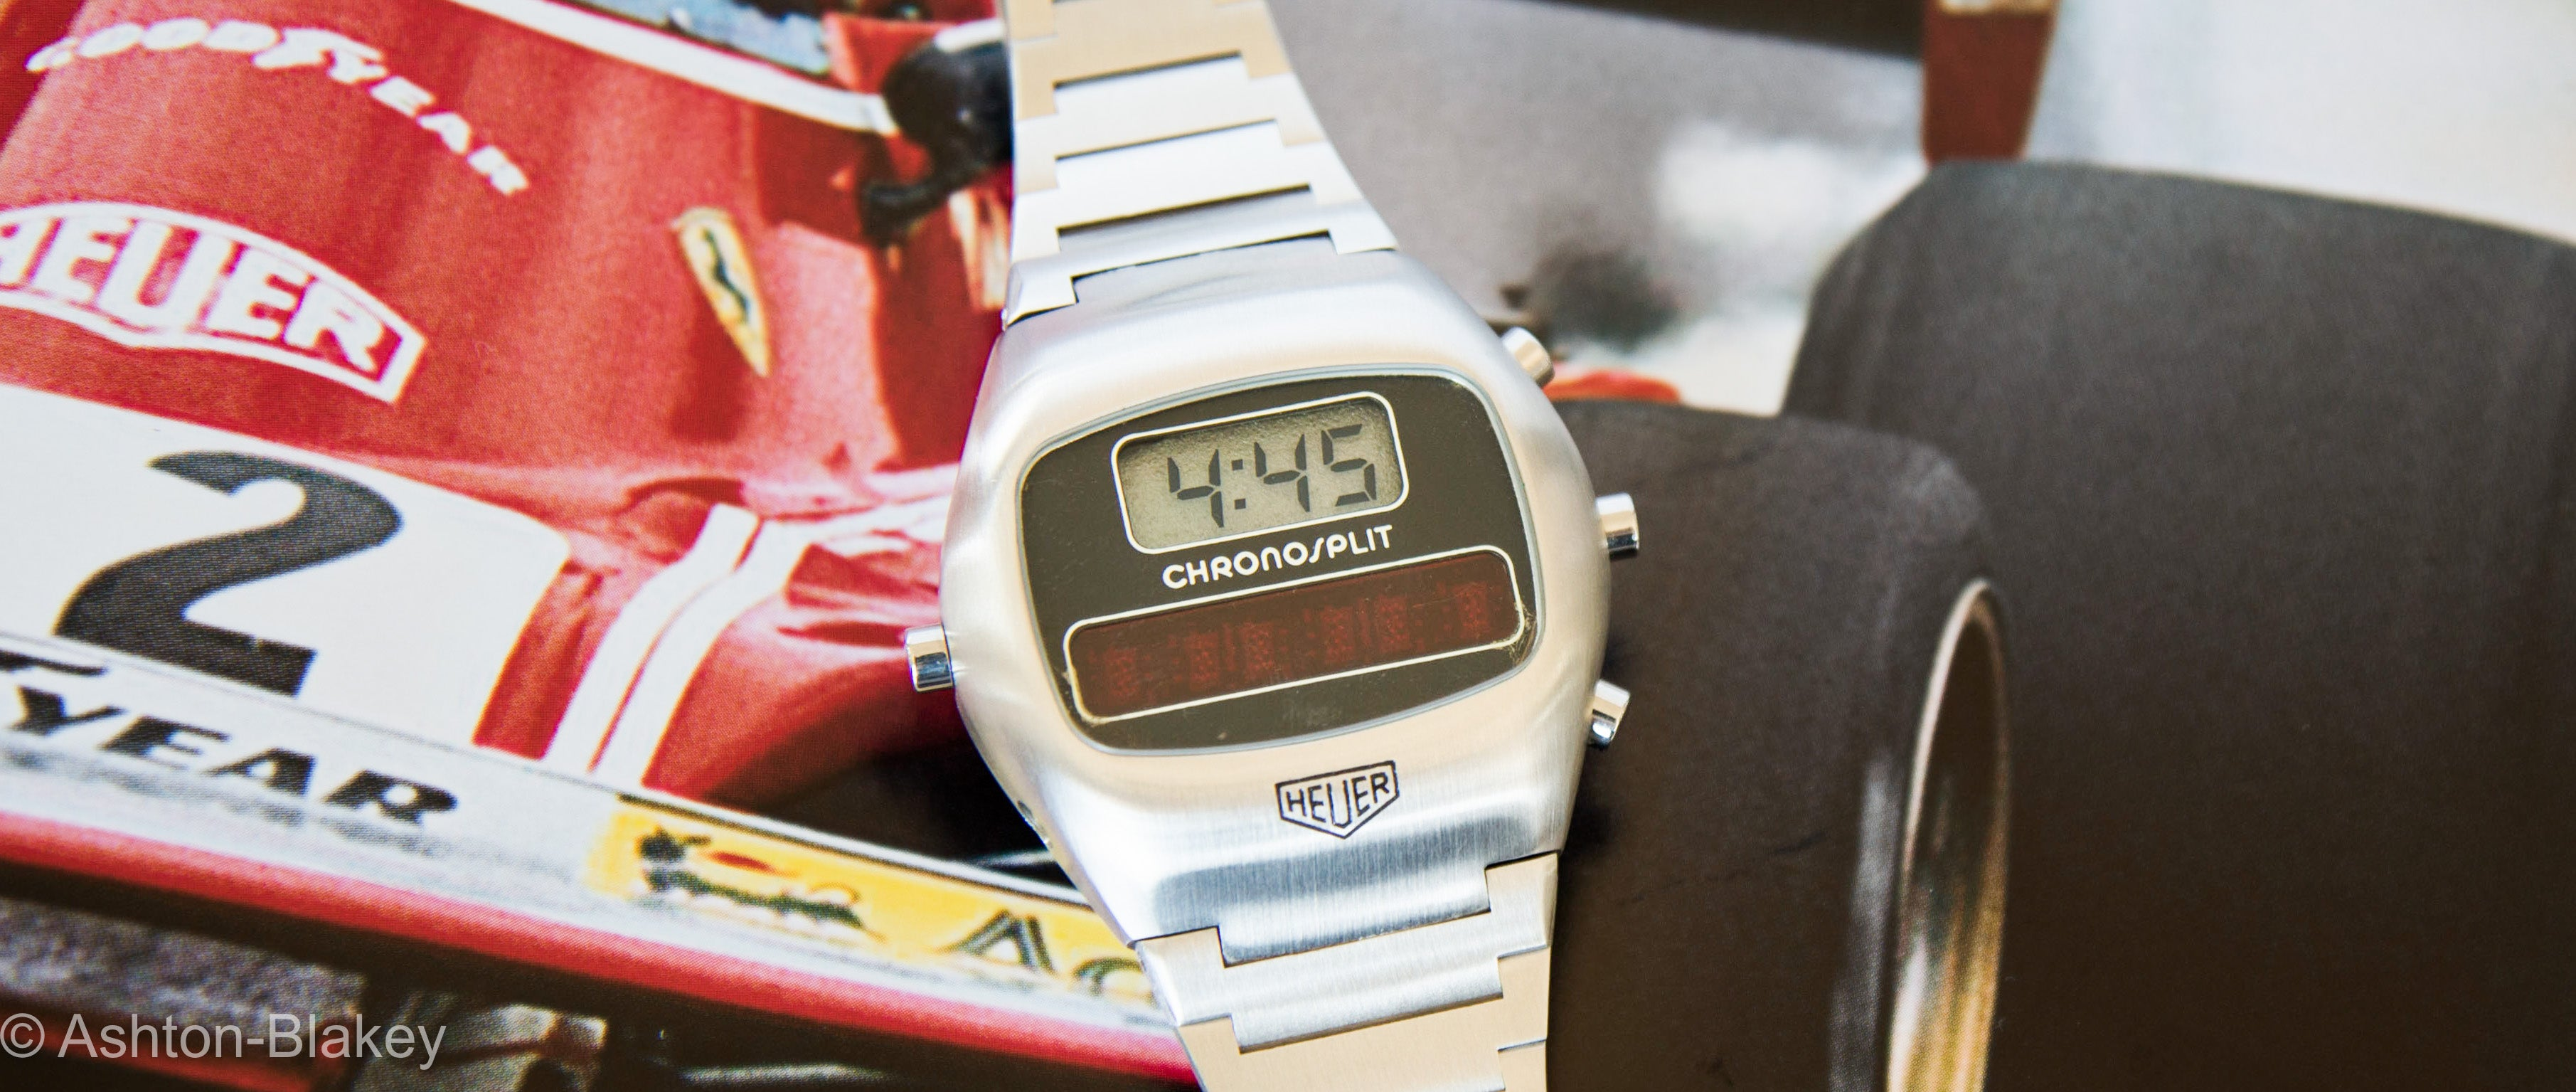 A Closer Look at the Iconic 1975 Heuer Chronosplit LCD/LED Vintage Watch (With Video)